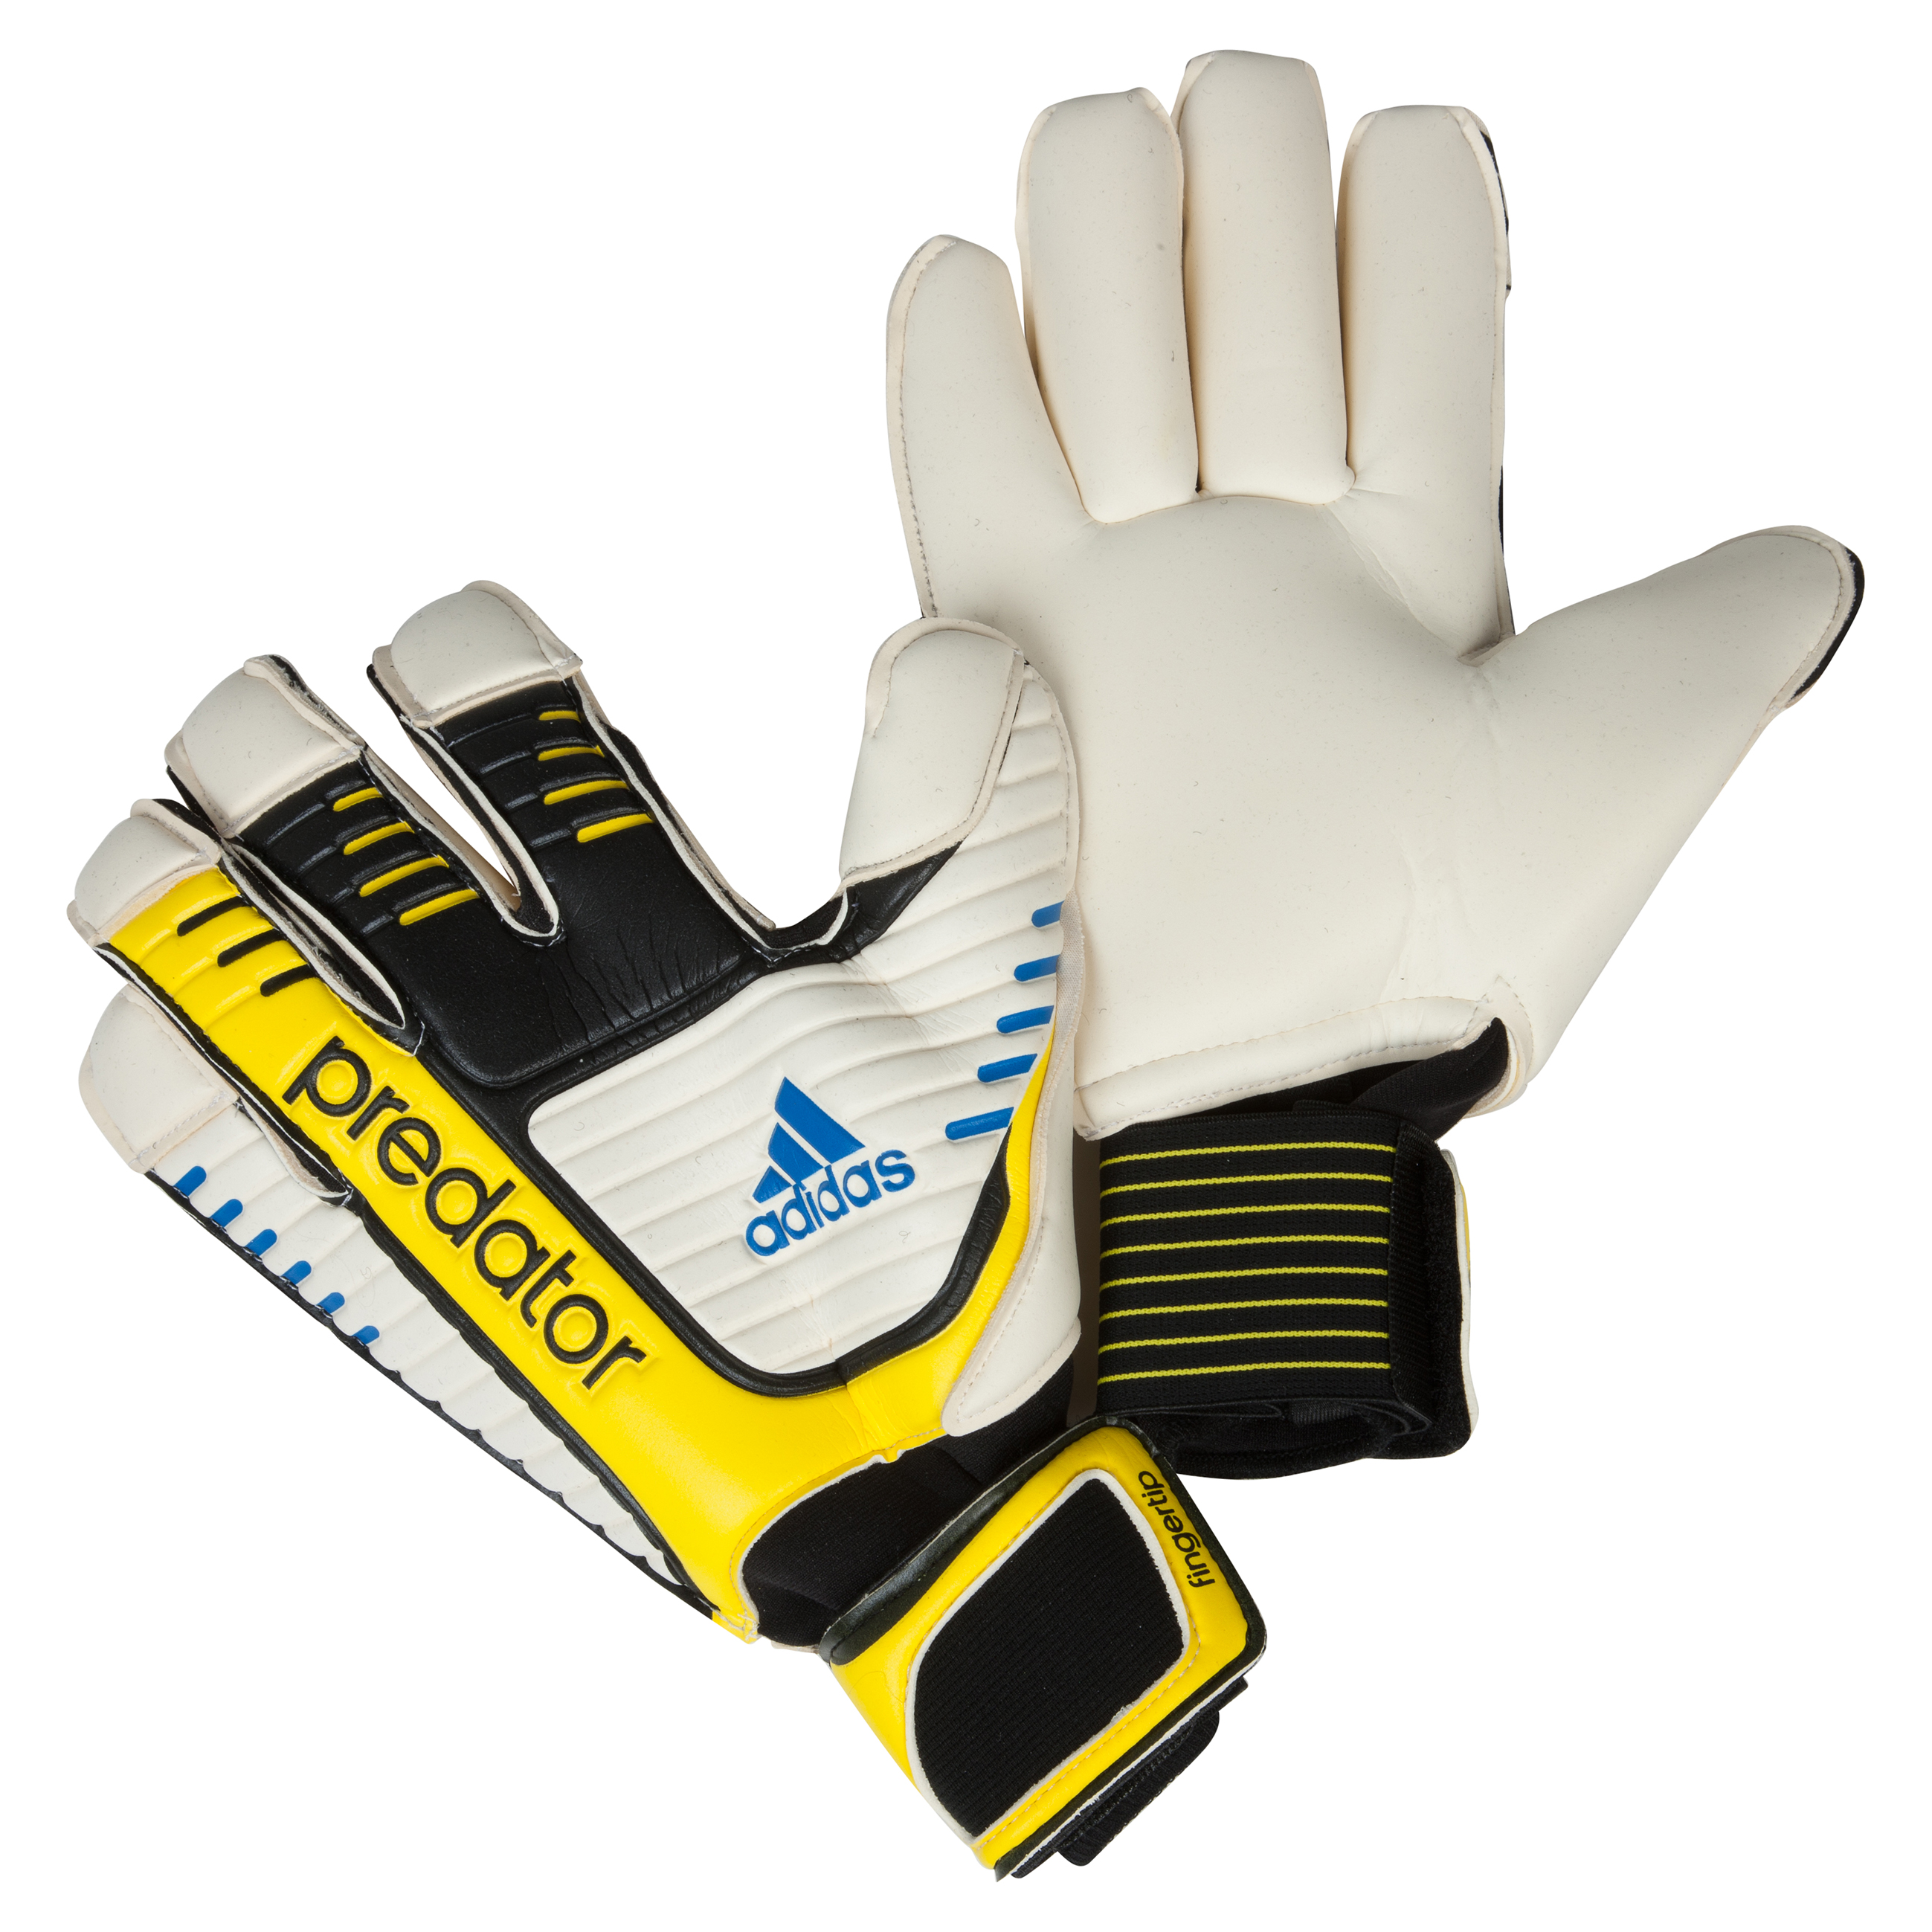 Adidas Pred FT Goalkeeper Gloves - Black/White/Vivid Yellow/Prime Blue